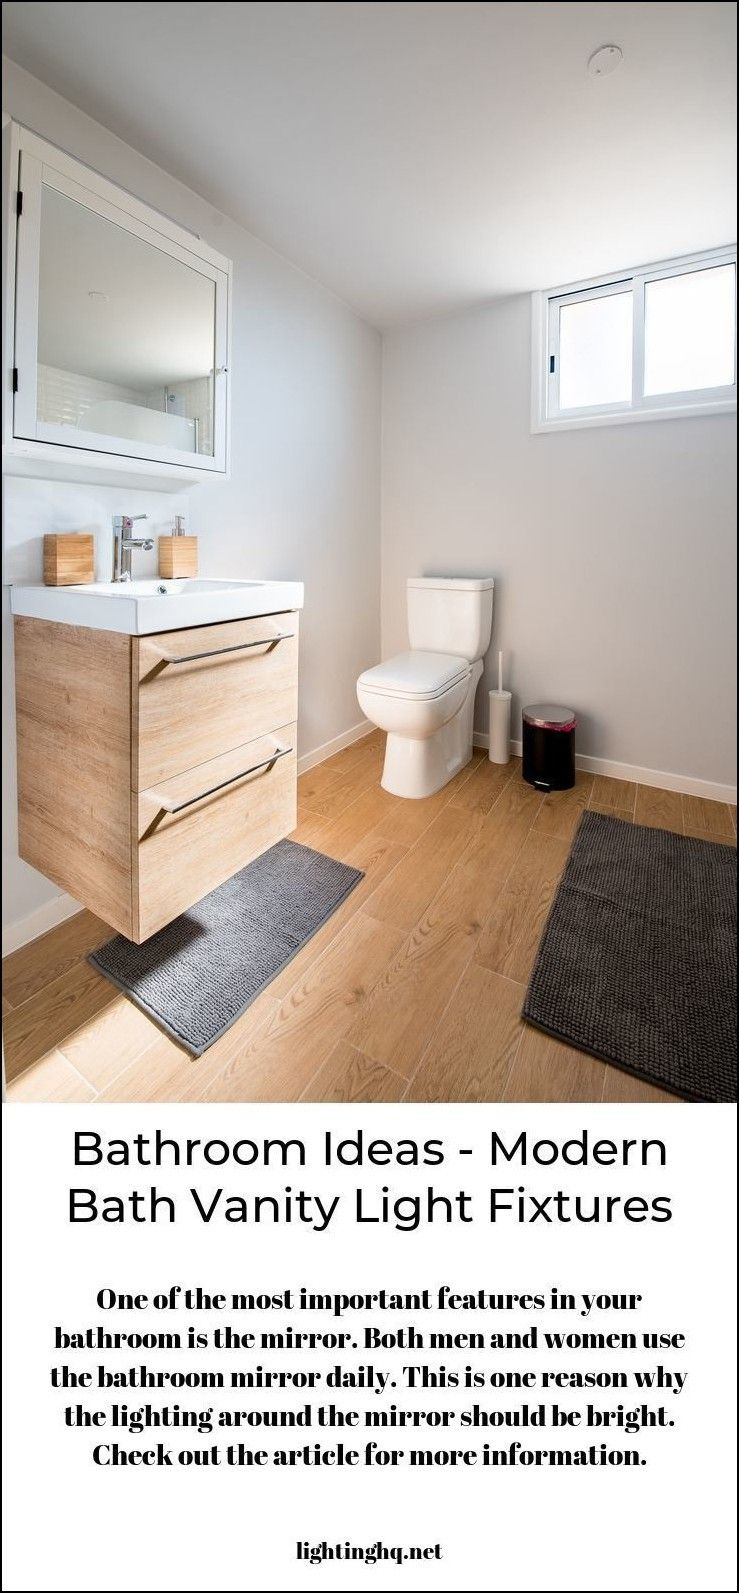 Simply Click The Image To Find Out More Modern Bathroom Vanity Lights Bathroomvanitylightfixtures Bathroomlightfixt Bathrooms Remodel Simple Bathroom Remodel